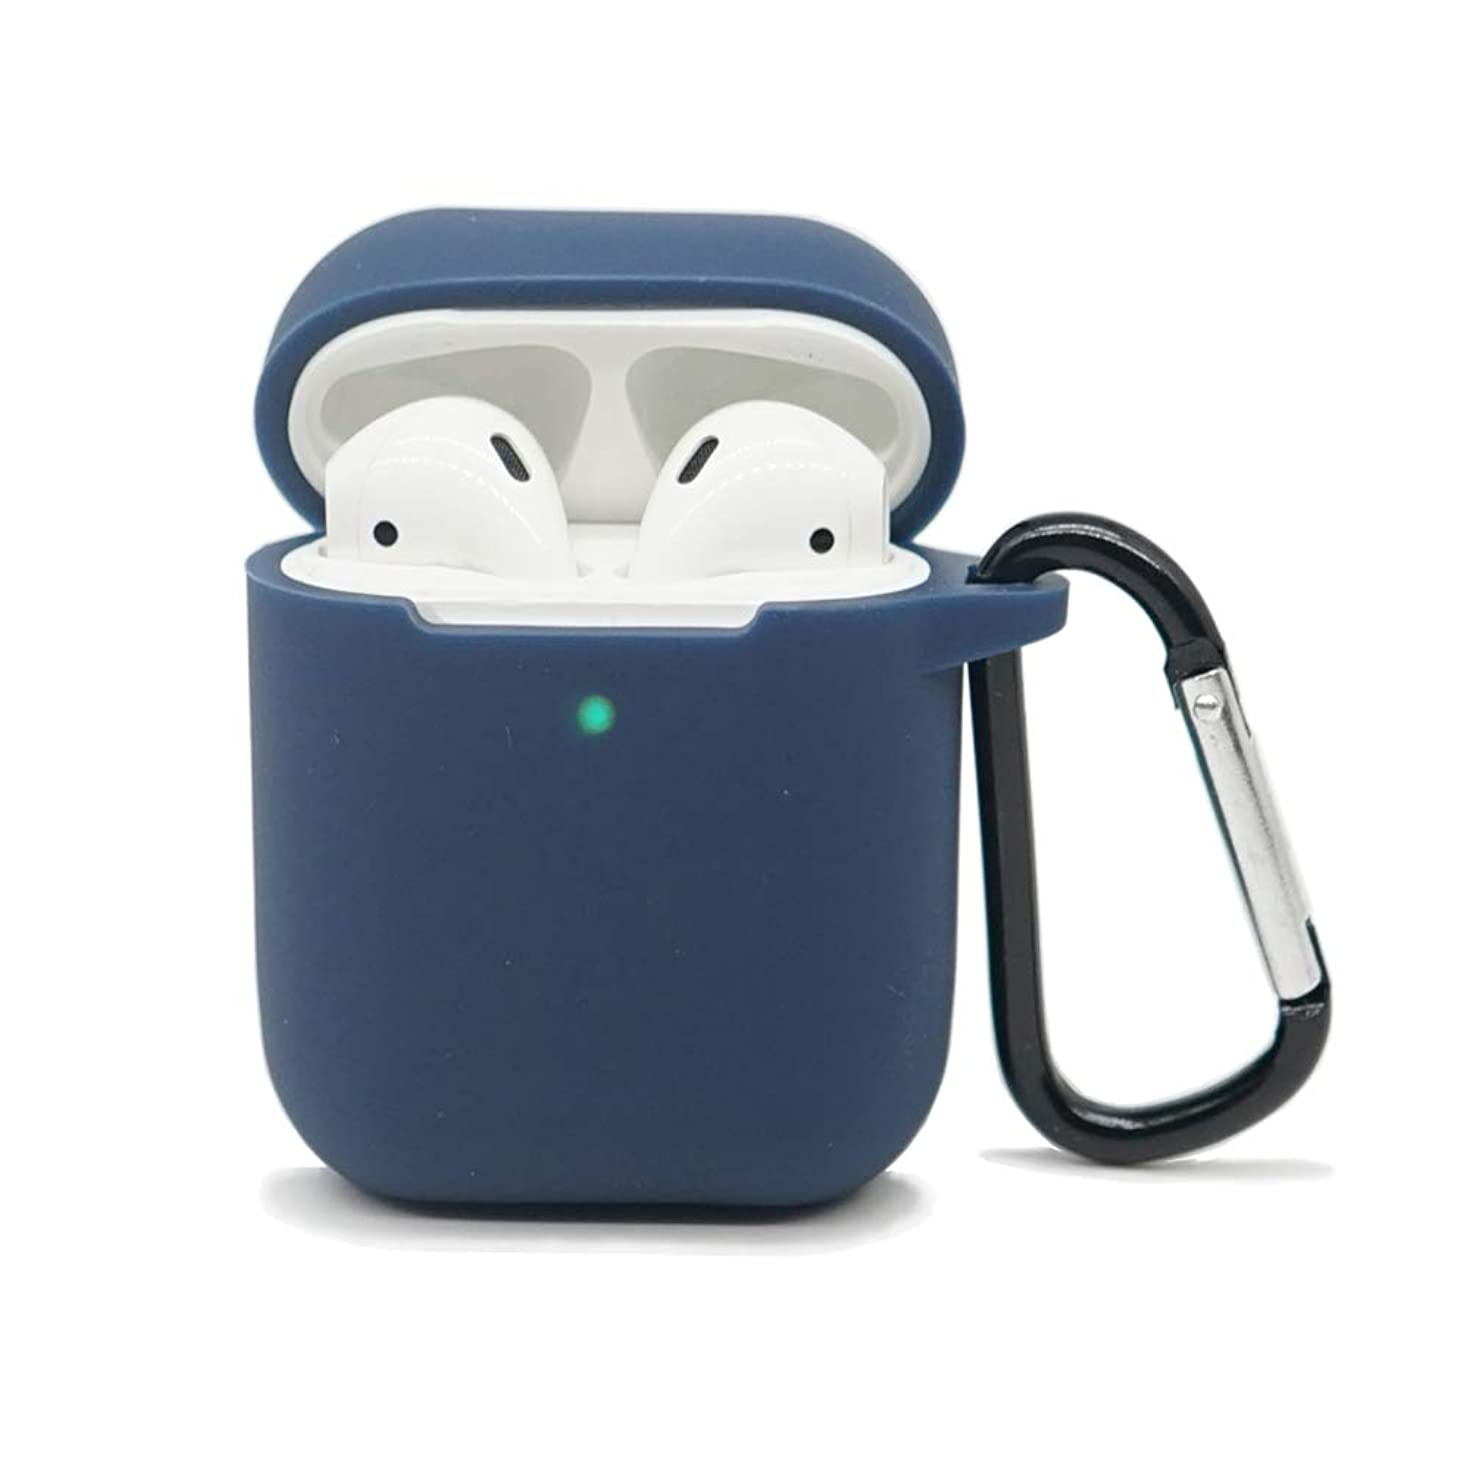 AirSha Compatible for AirPods Case with Keychain,[Front LED Visible]&[Support Wireless Charging],Shockproof Protective Silicone Cover Skin for AirPods Charging Case 2 & 1 (Midnight Blue)